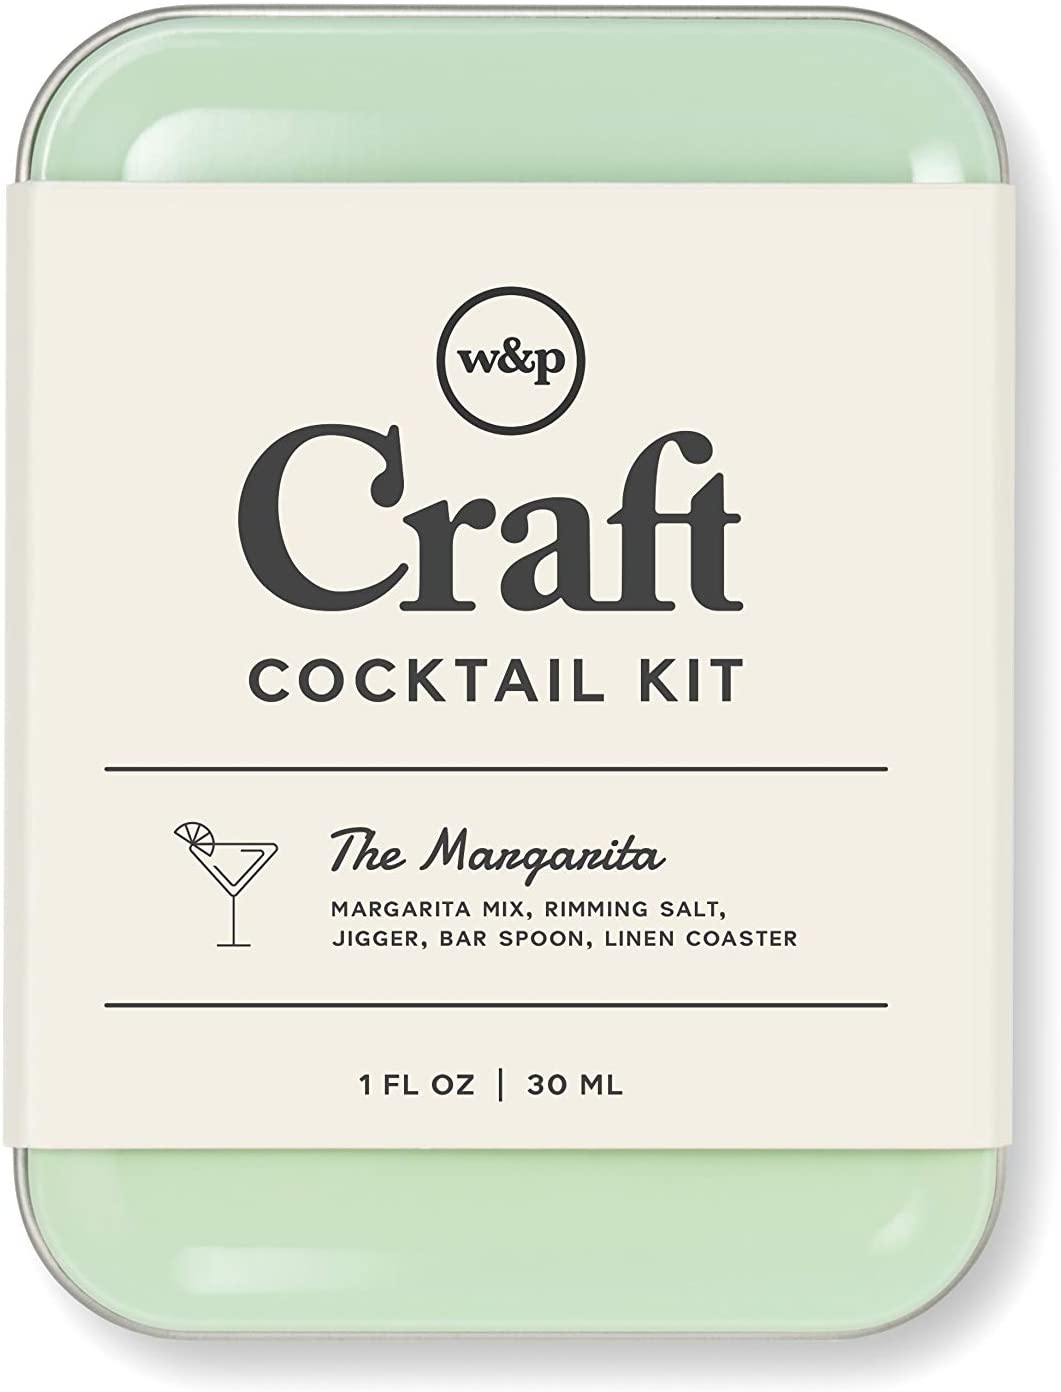 travel-gifts-for-women-cocktail-kit